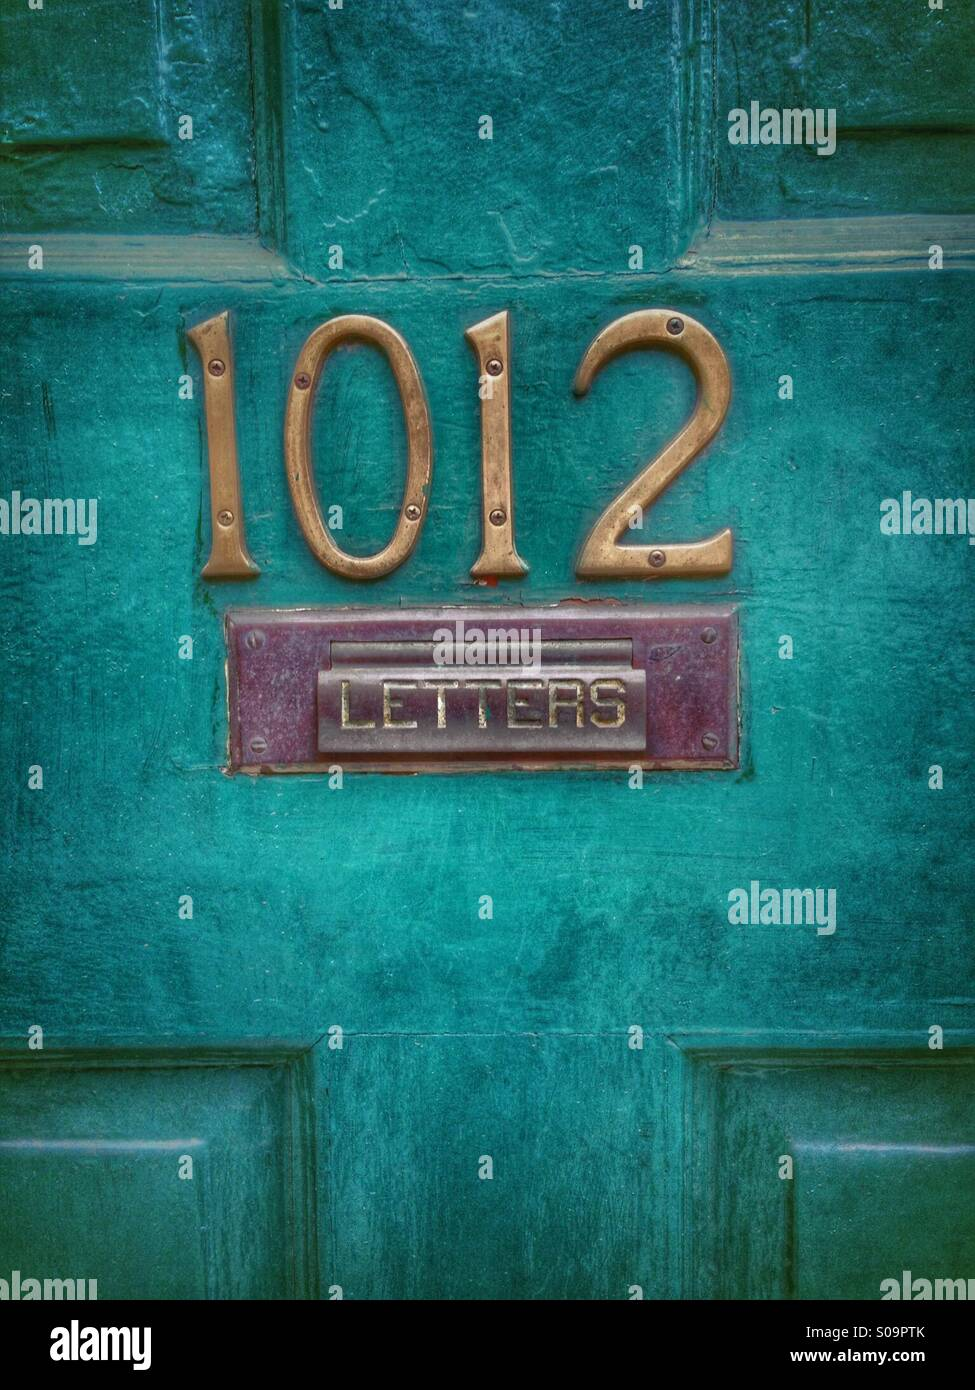 Letterbox on old door. - Stock Image